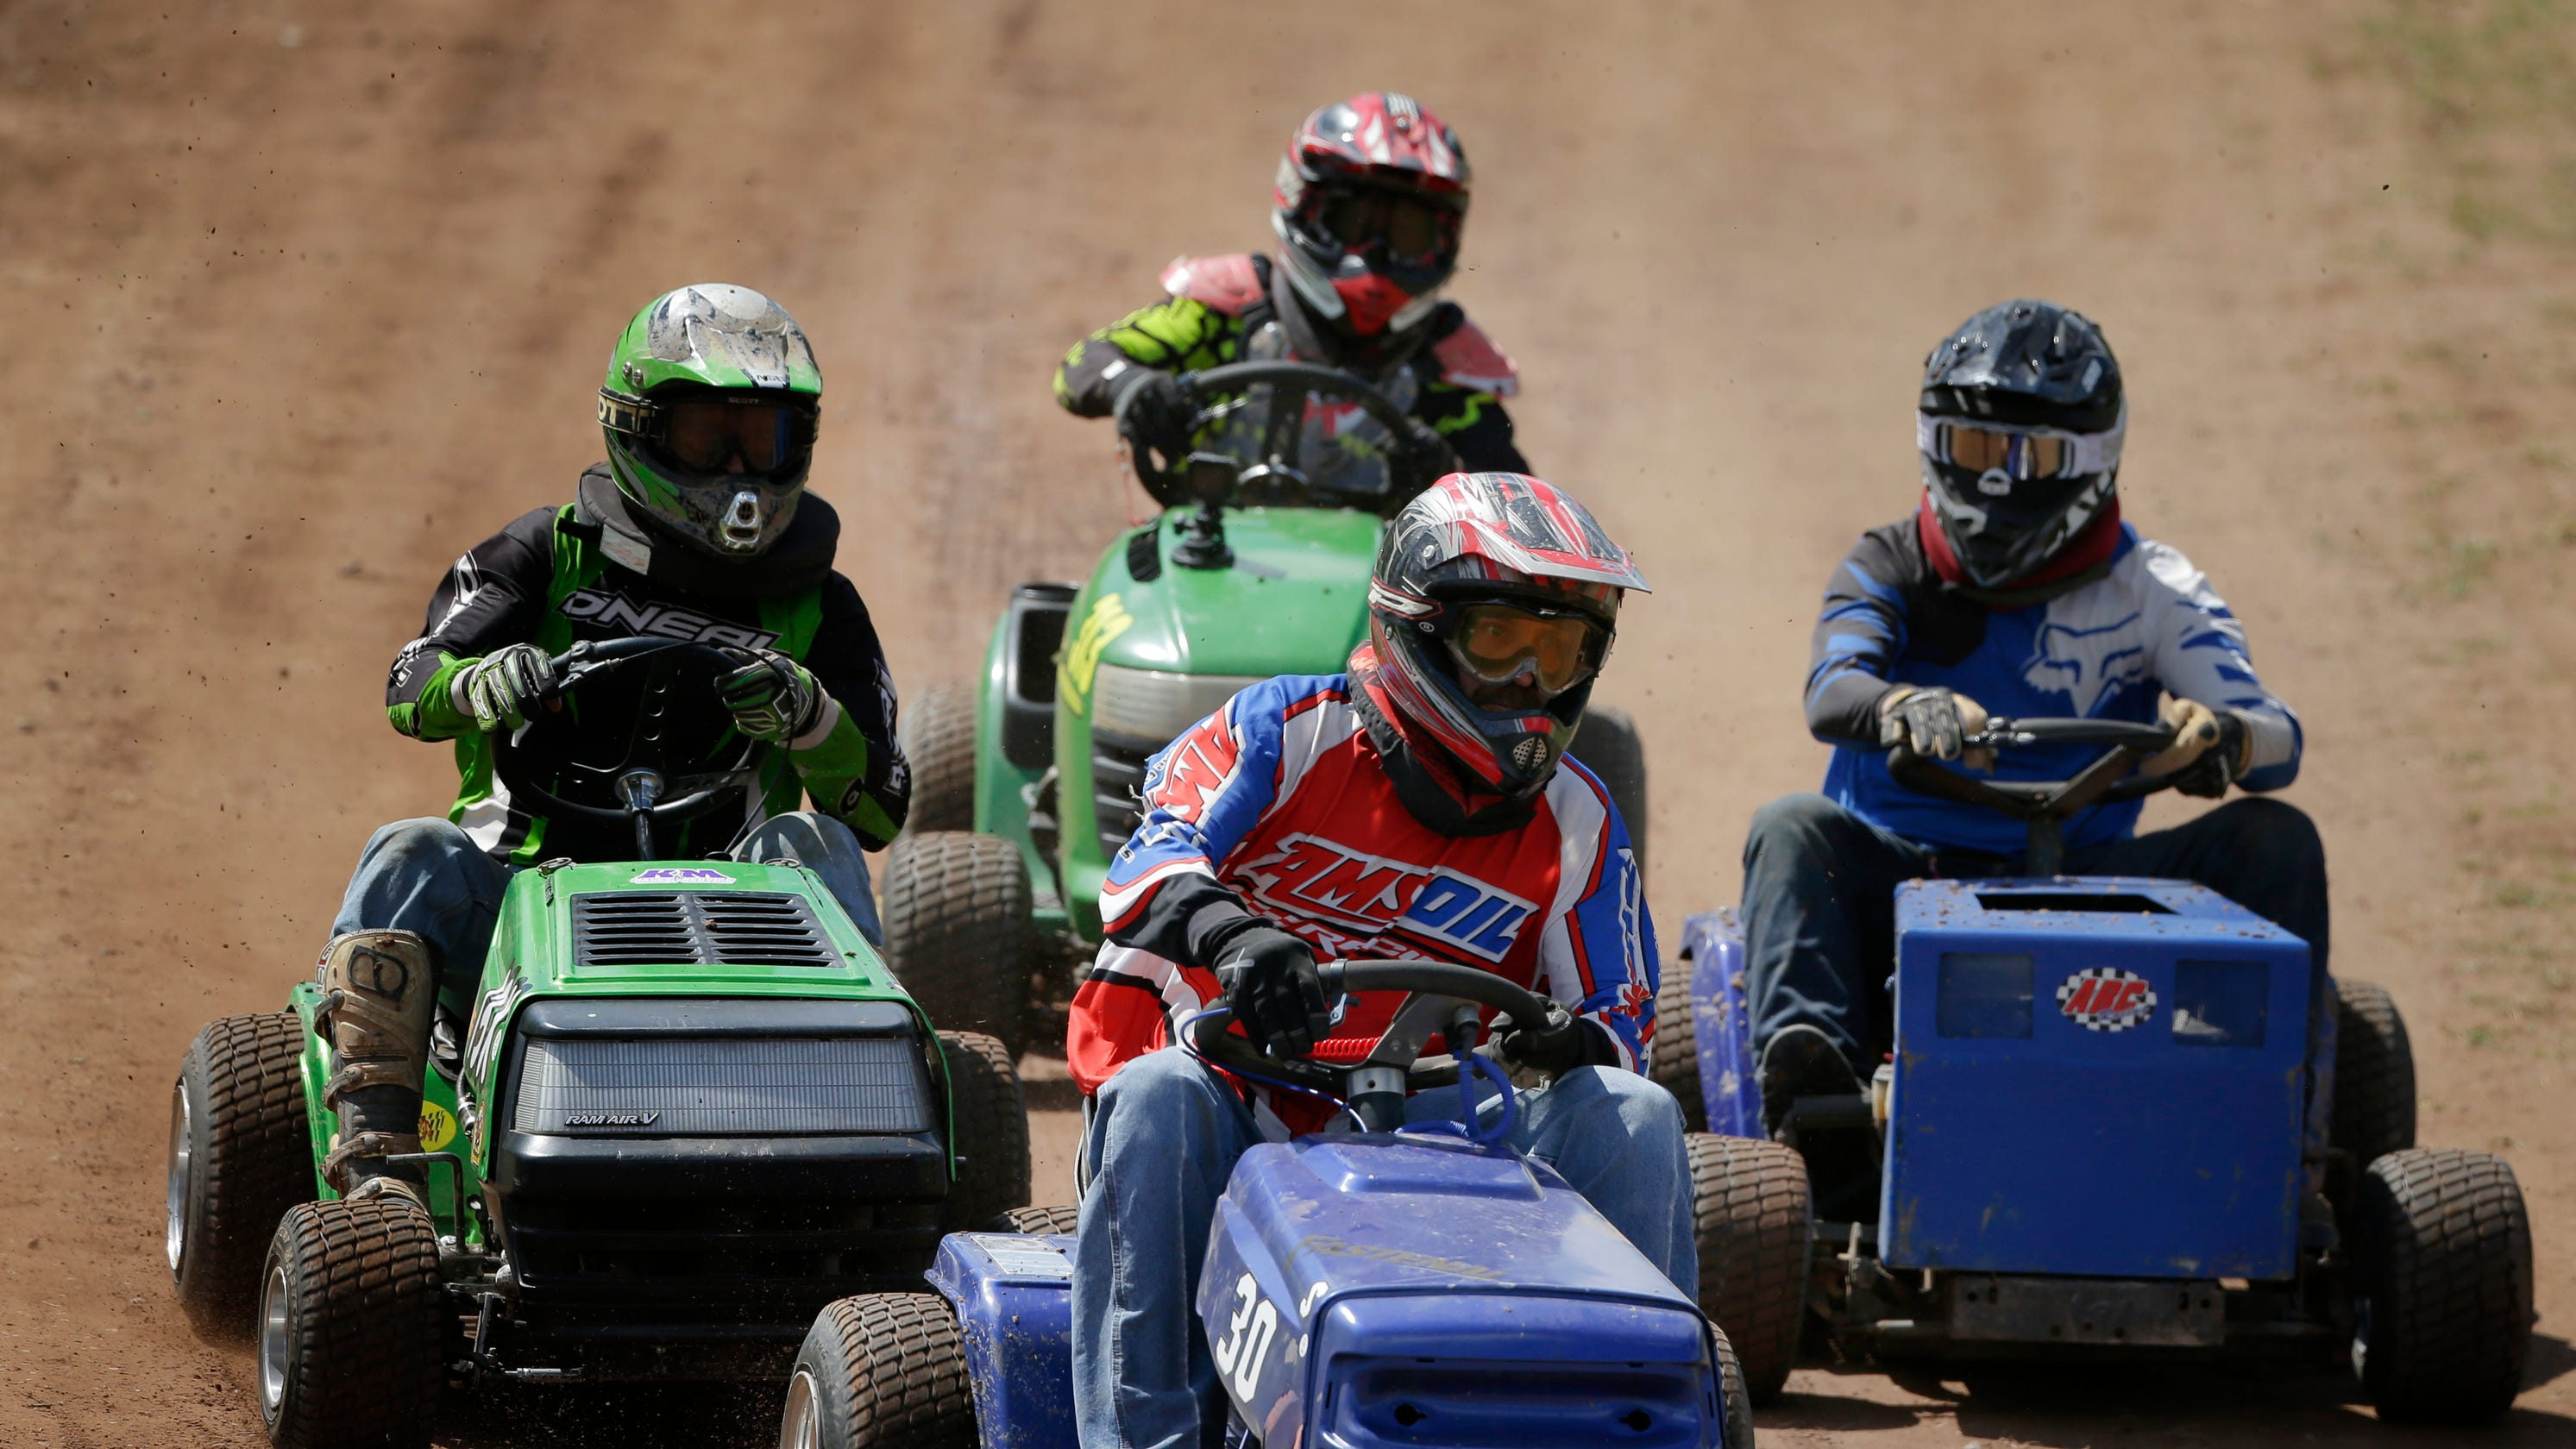 Wisconsin lawn mower racers compete for trophies, bragging rights